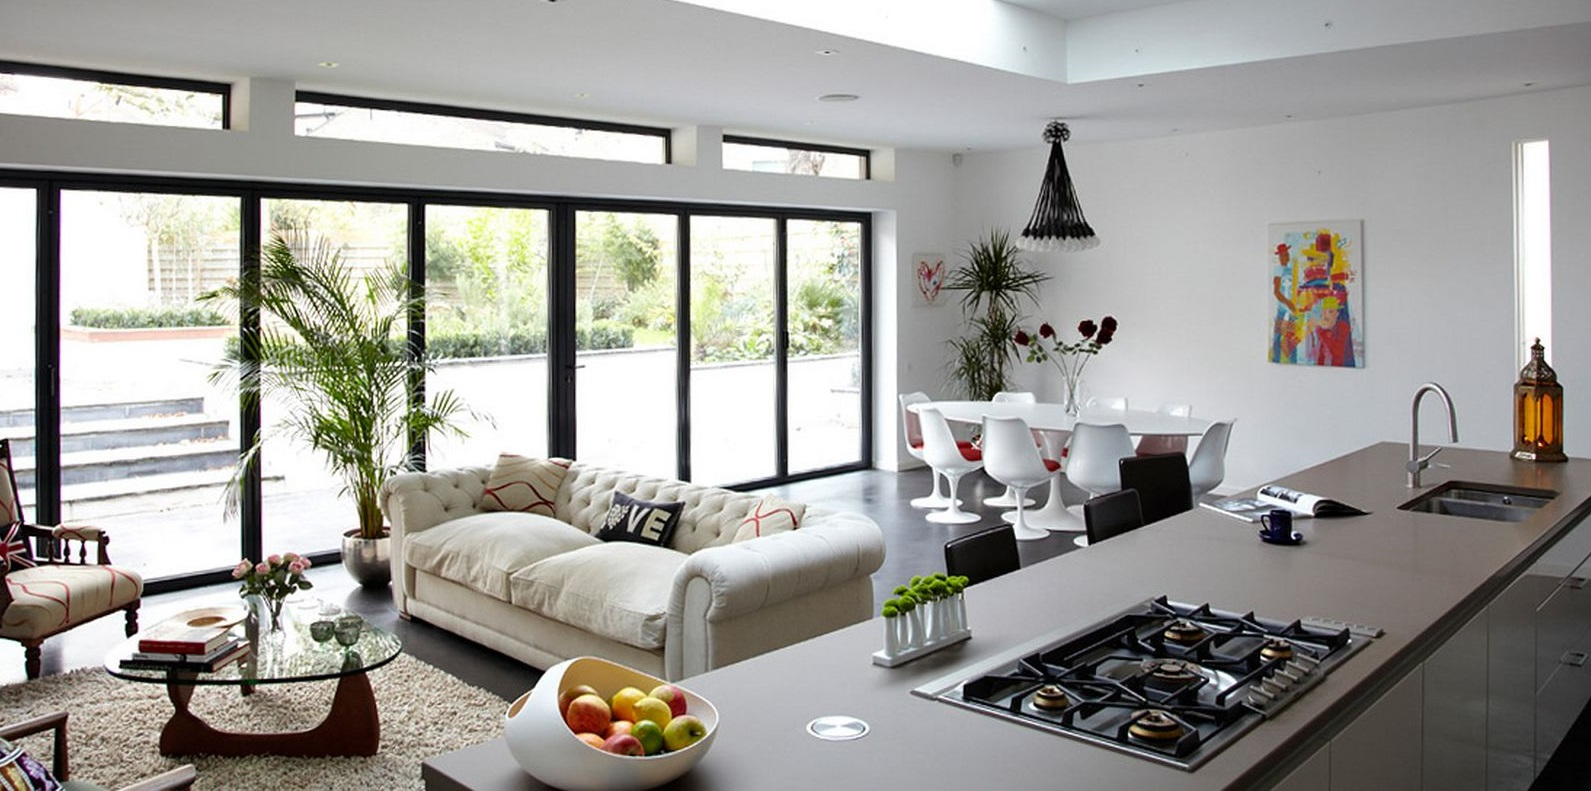 combining-kitchen-and-living-room-interior-decorating